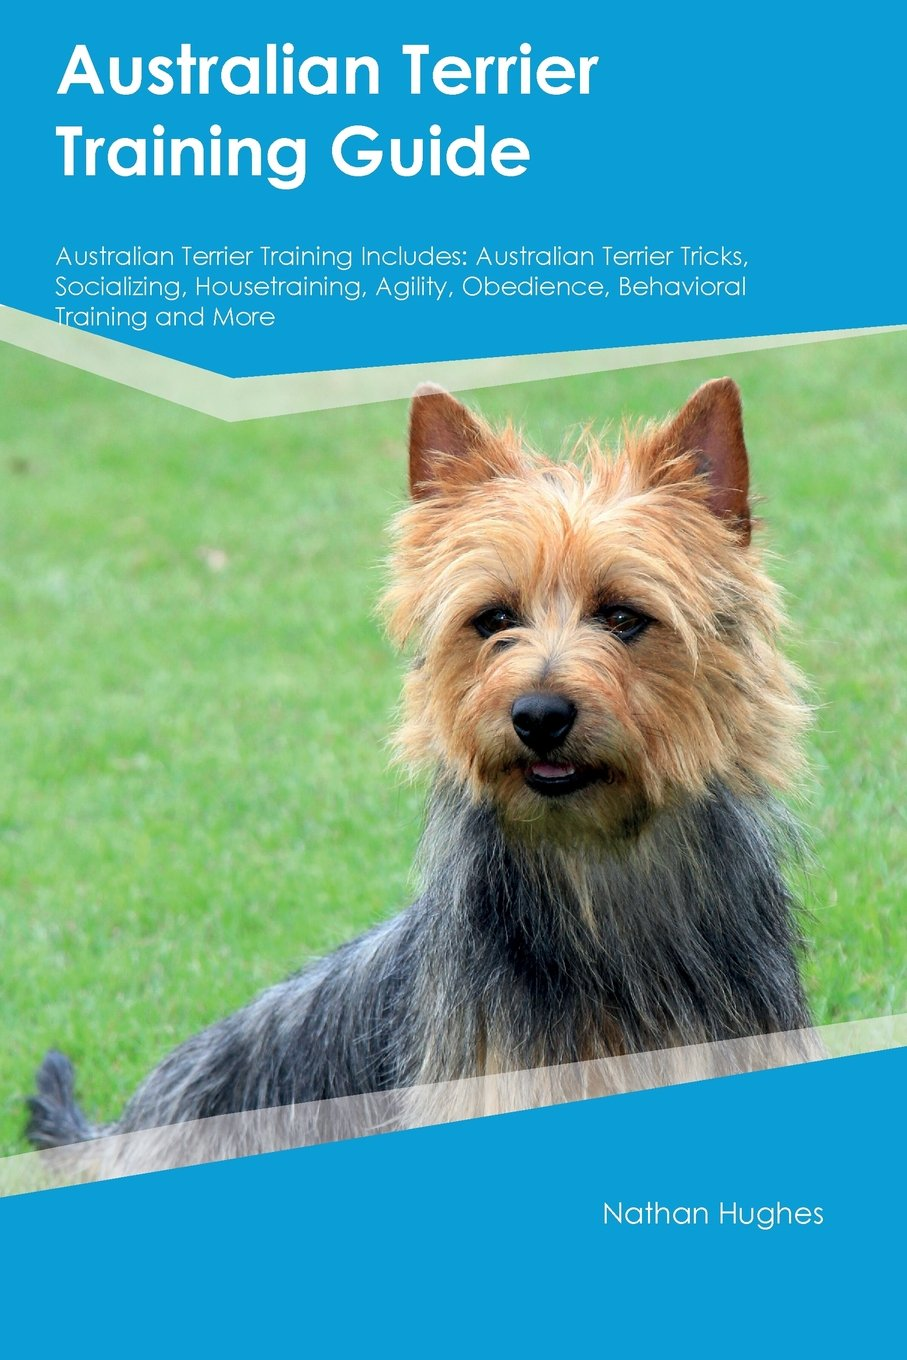 Australian Terrier Training Guide Australian Terrier Training Includes: Australian Terrier Tricks, Socializing…